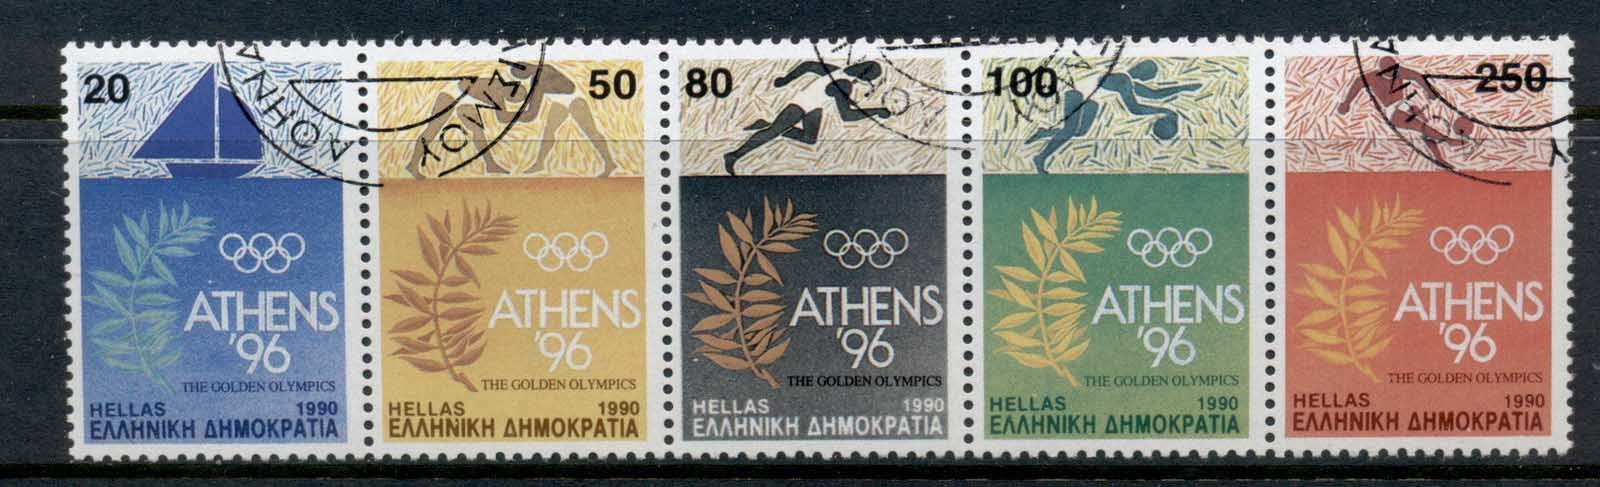 Greece 1990 Summer Olympics Athens site CTO